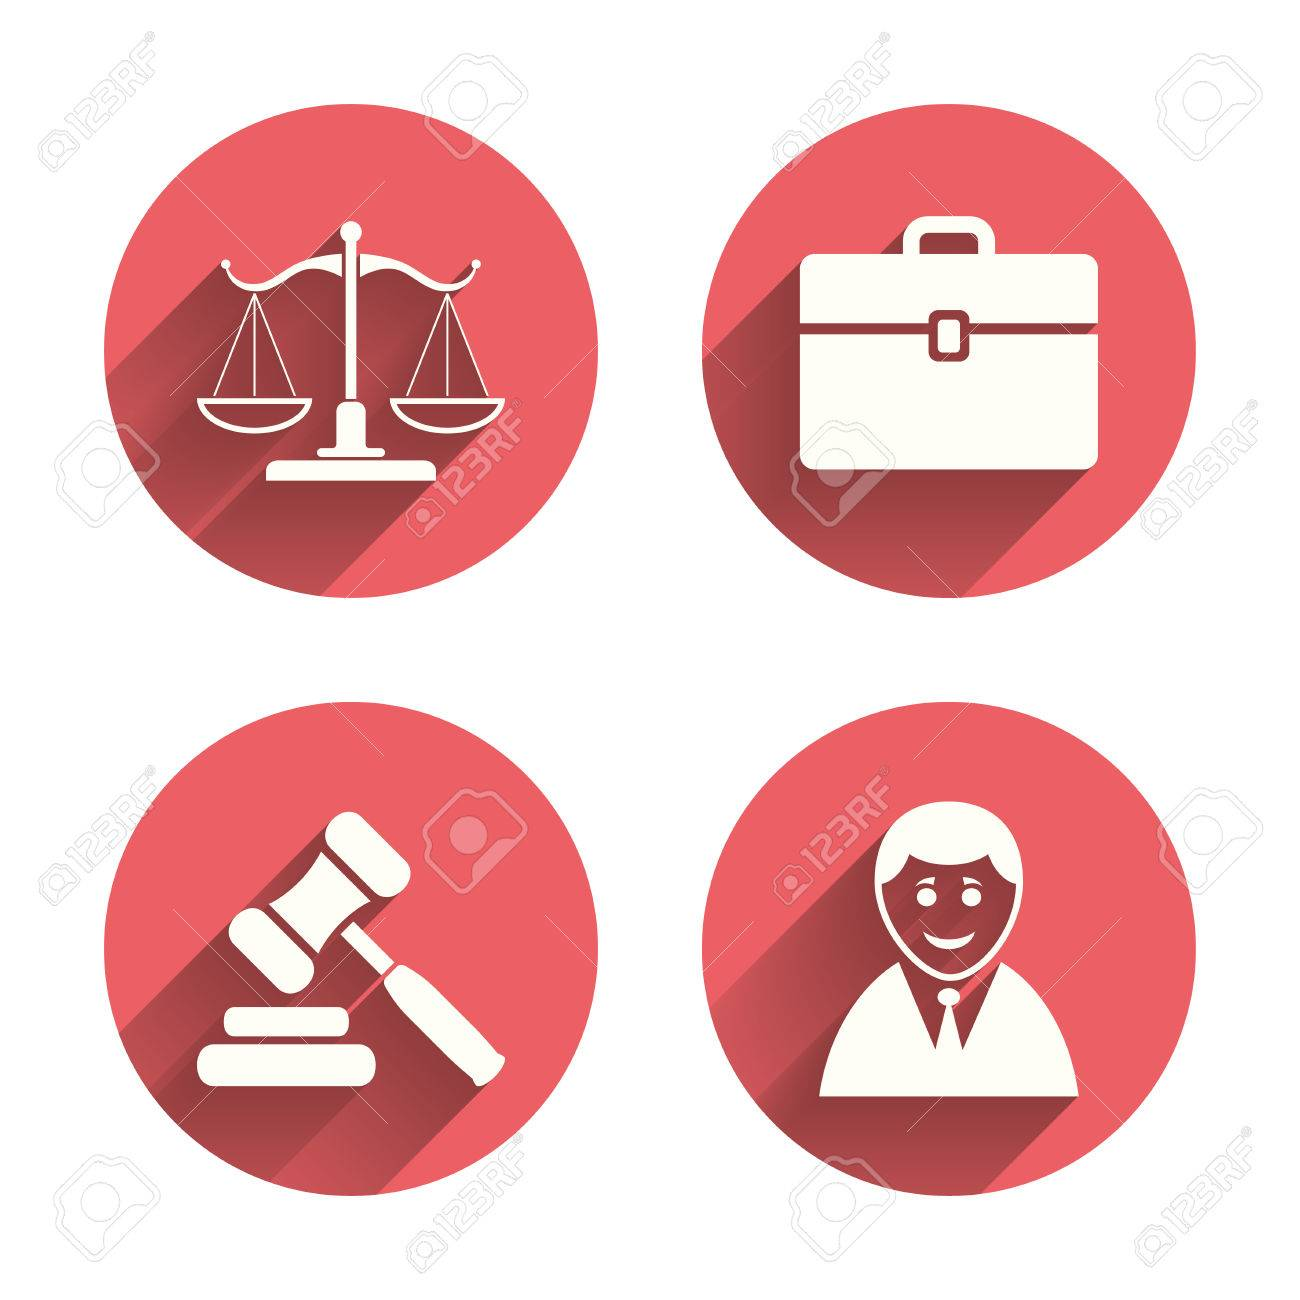 Scales Of Justice Icon Client Or Lawyer Symbol Auction Hammer